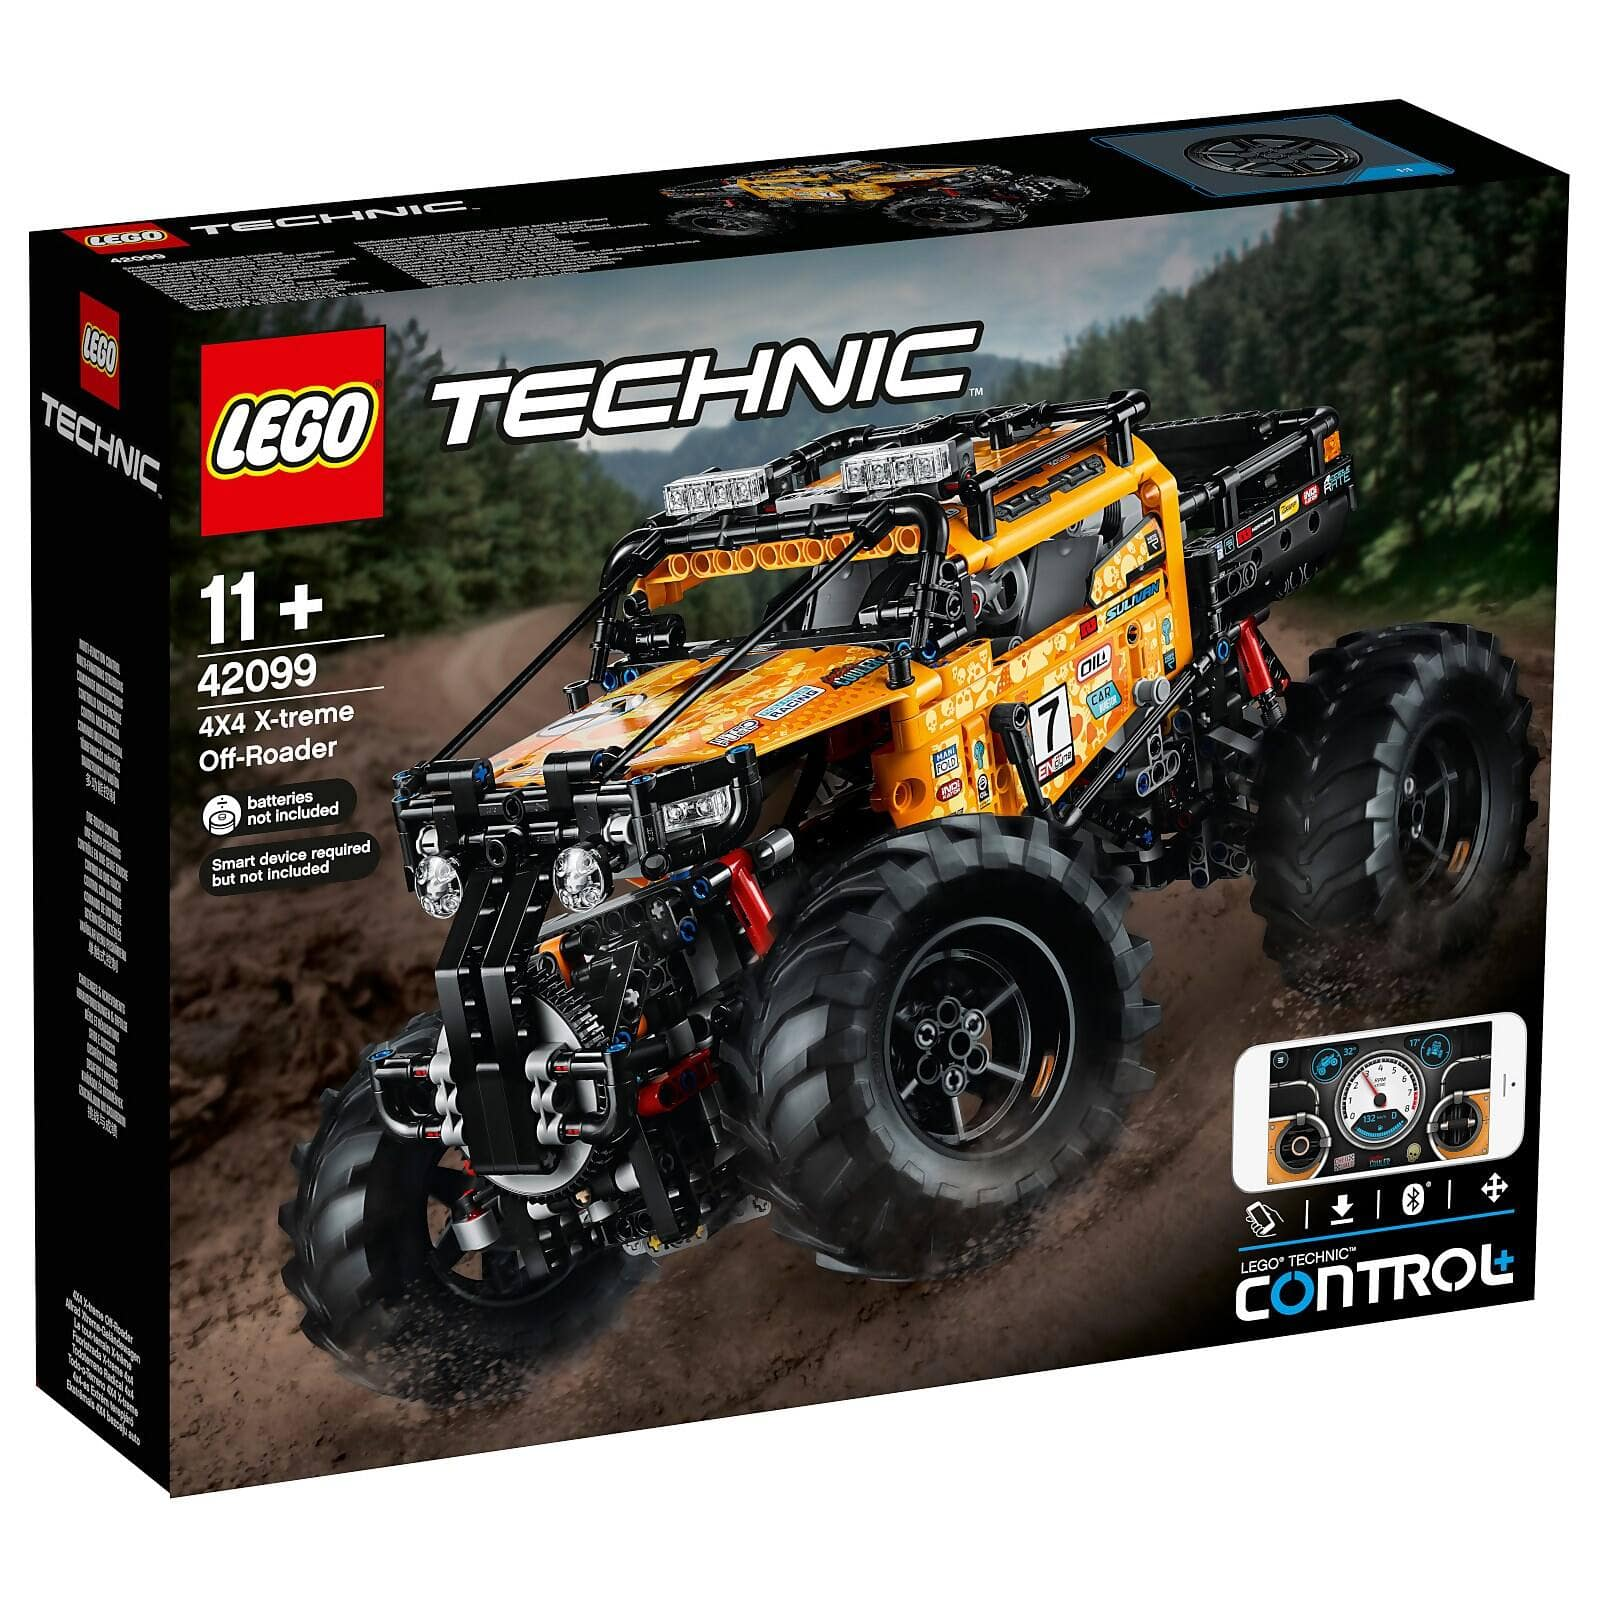 LEGO Technic: Control+ 4x4 X-treme Off-Roader Truck Set (42099) $166.99 with Free Shipping